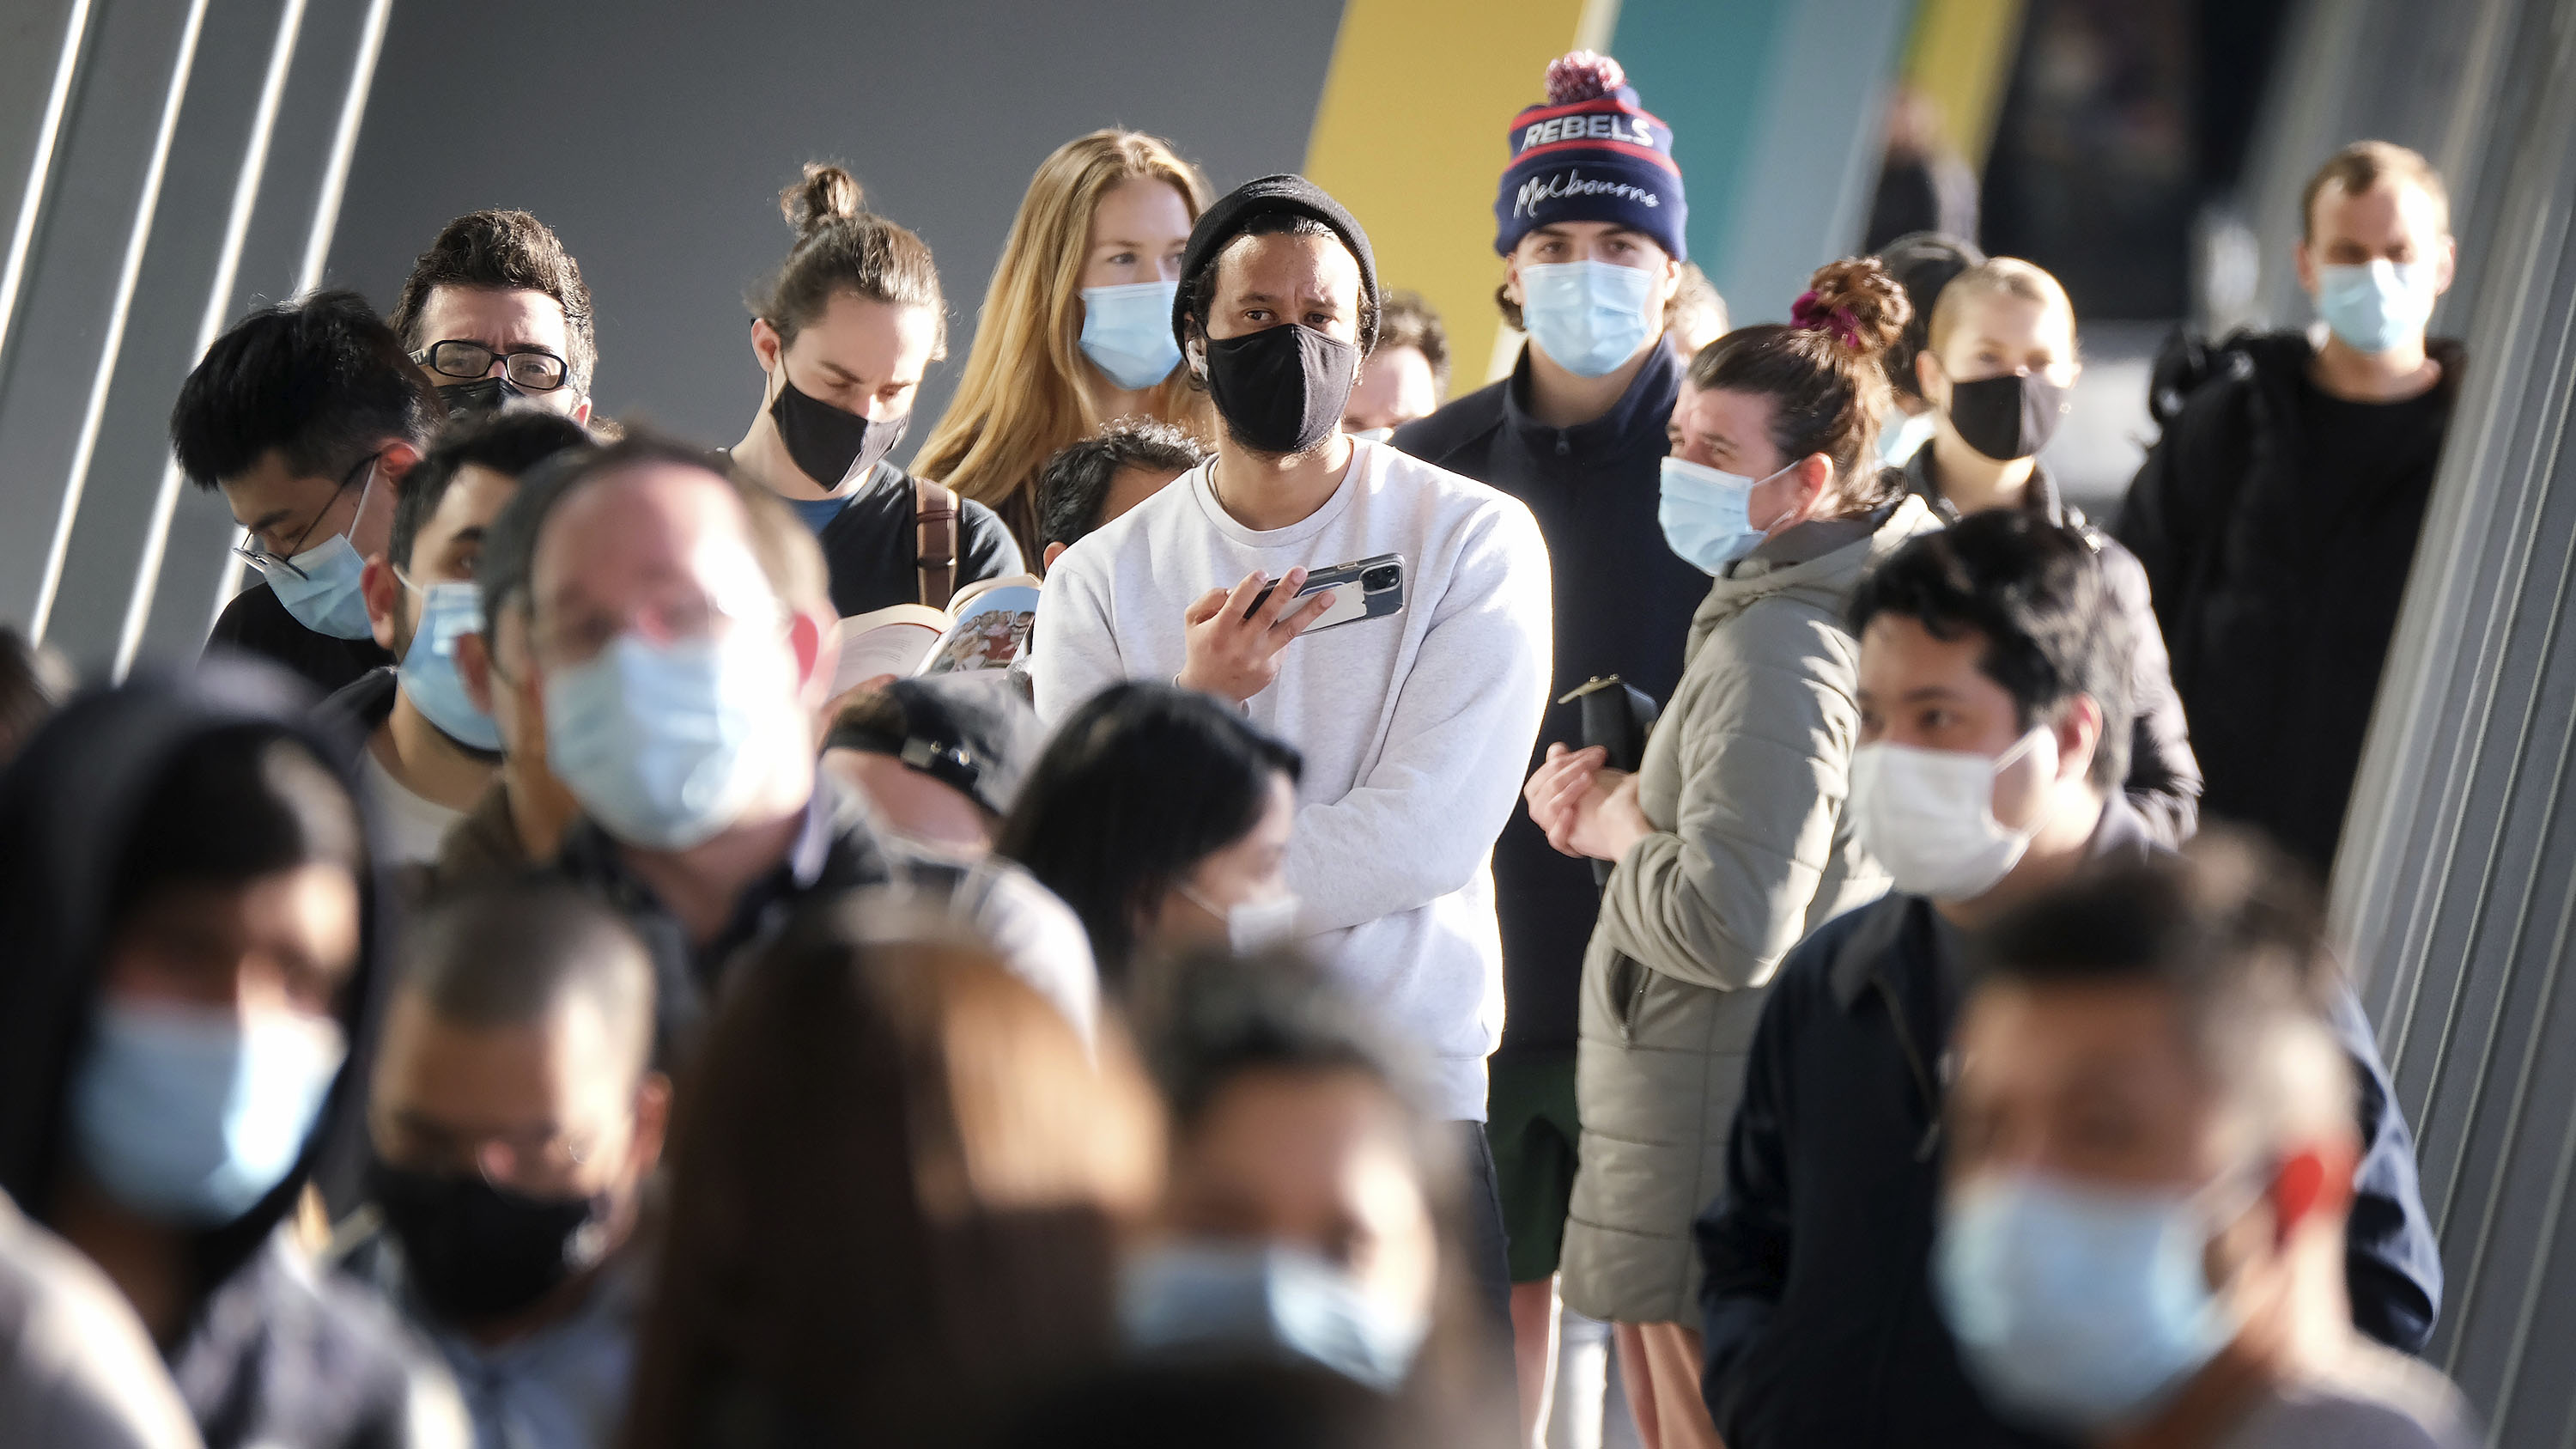 People line up to be vaccinated at the Melbourne Convention and Exhibition Centre.